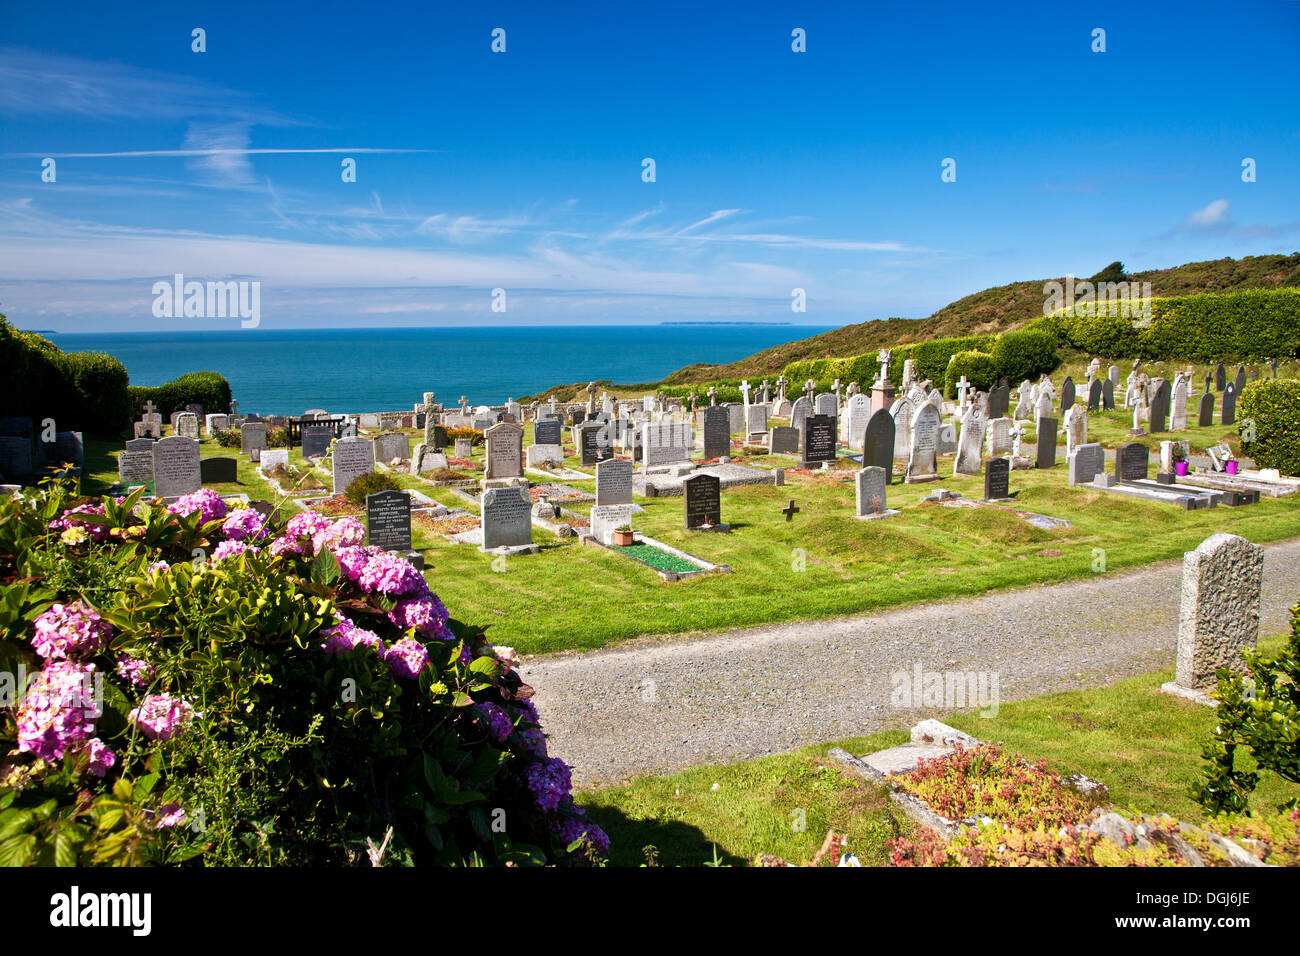 The cemetery at Morthoe overlooking the Bristol Channel and Lundy Island. - Stock Image